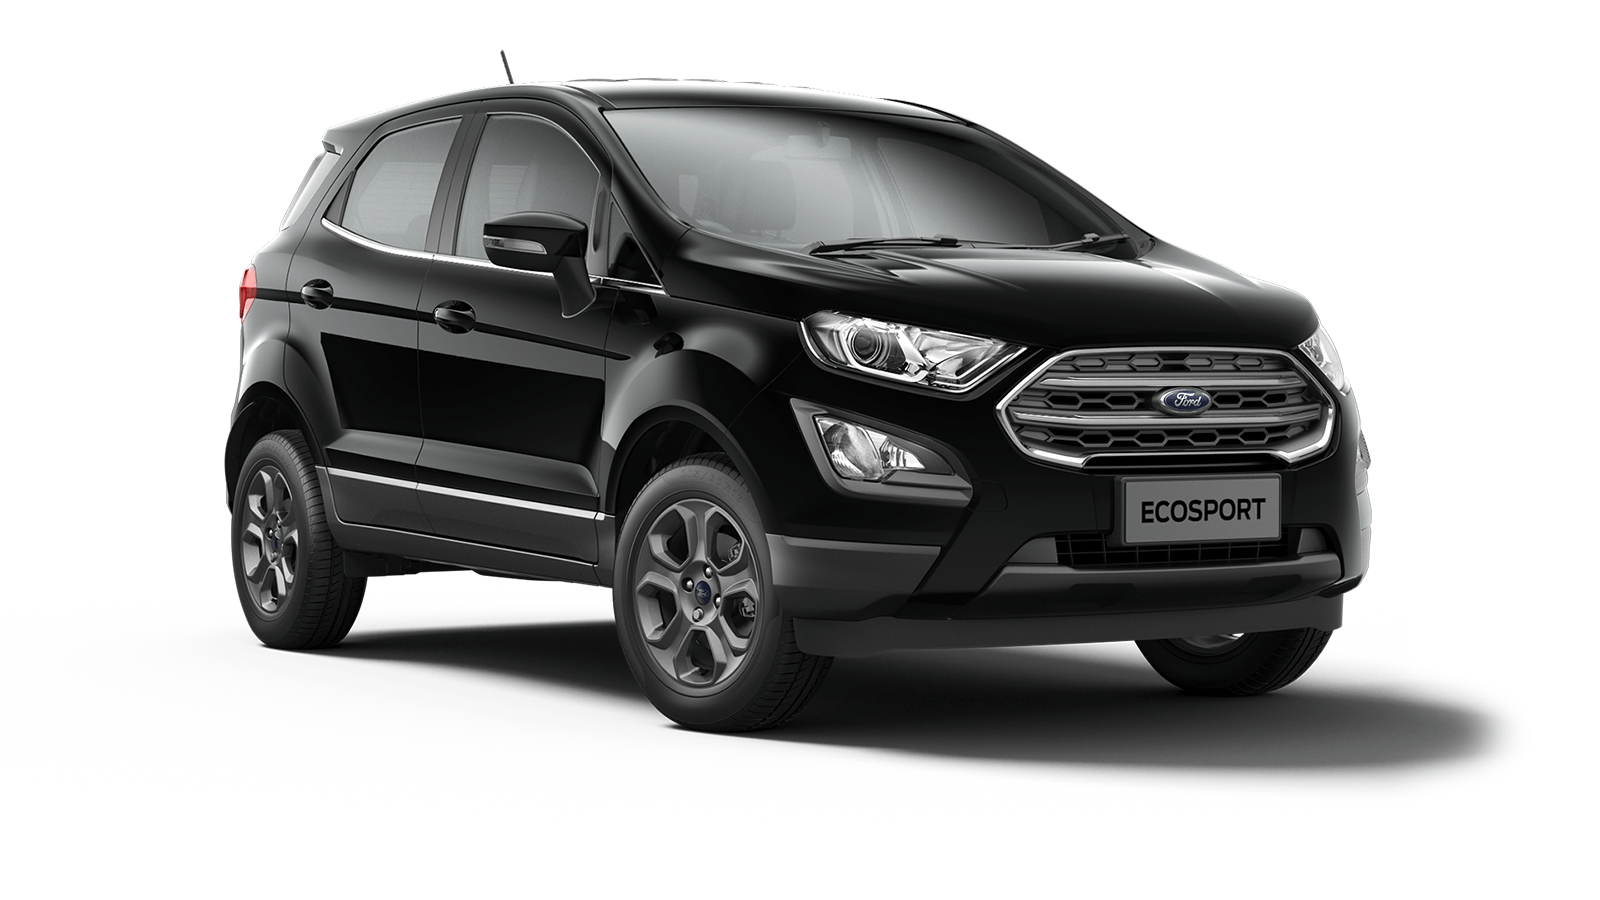 https://www.dealerinternet.co.uk/images/B515%20ECOSPORT/2019/5%20Door/Zetec/SHADOW-BLACK.png